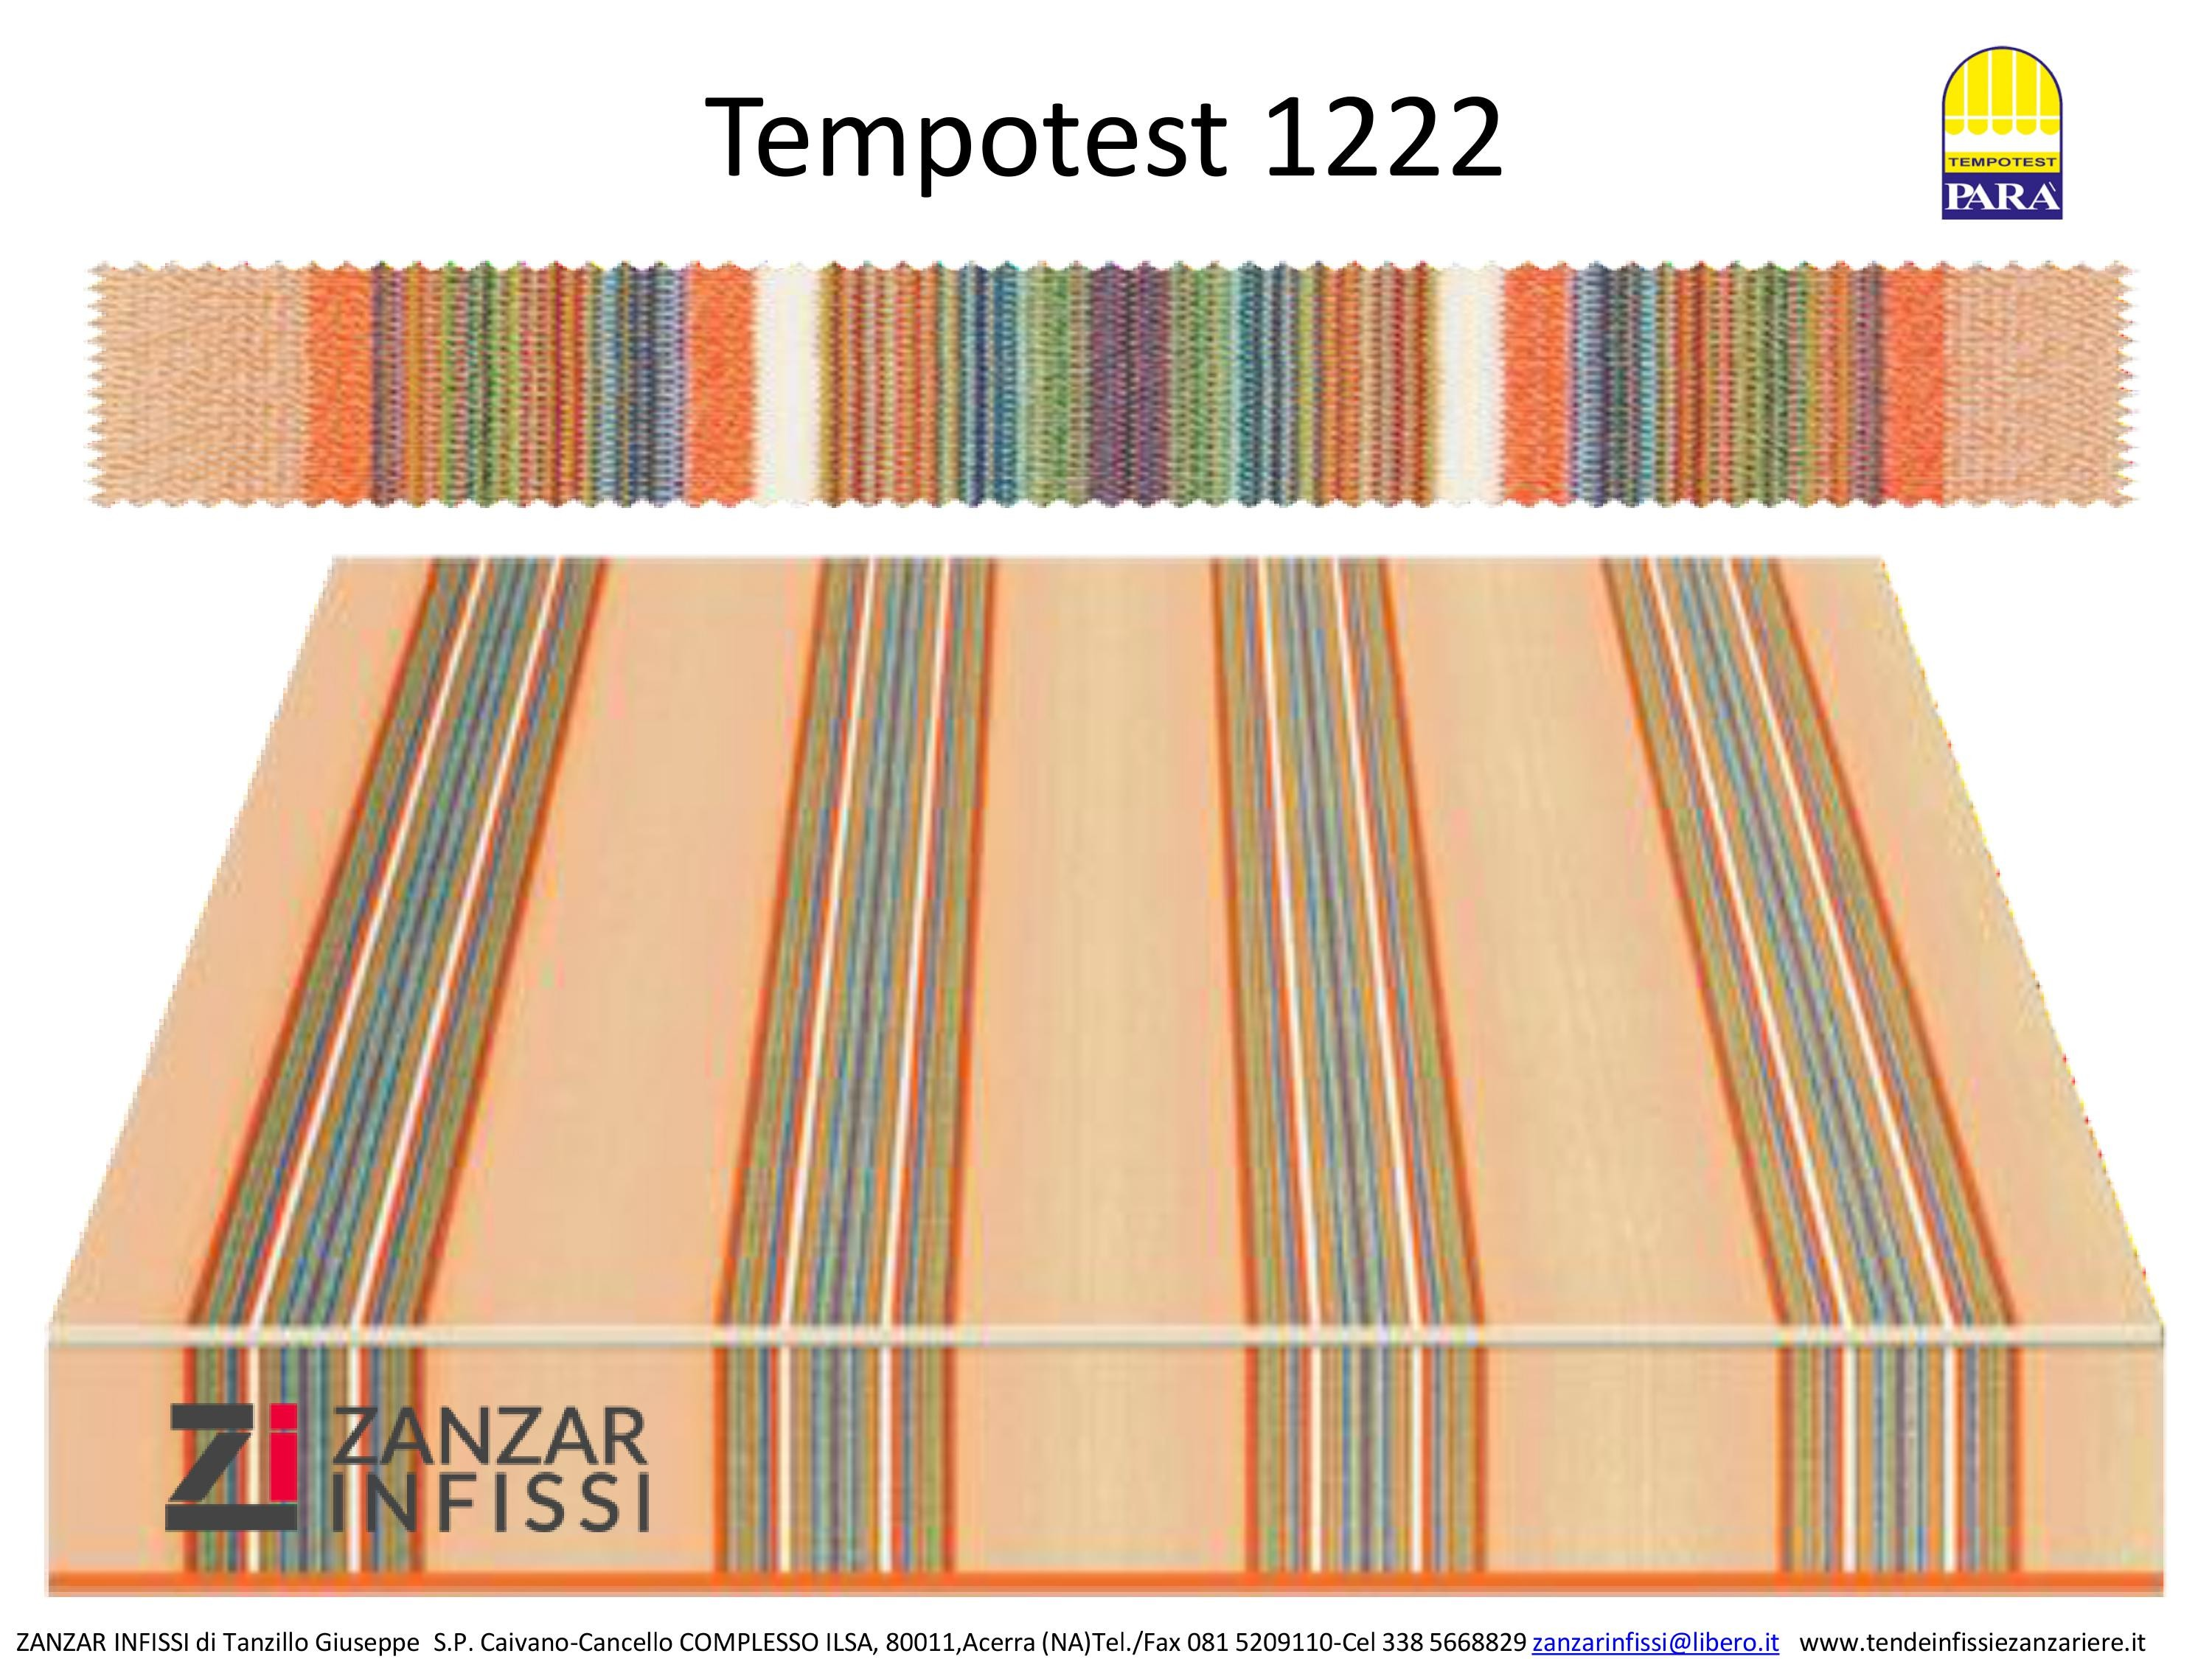 Tempotest 1222